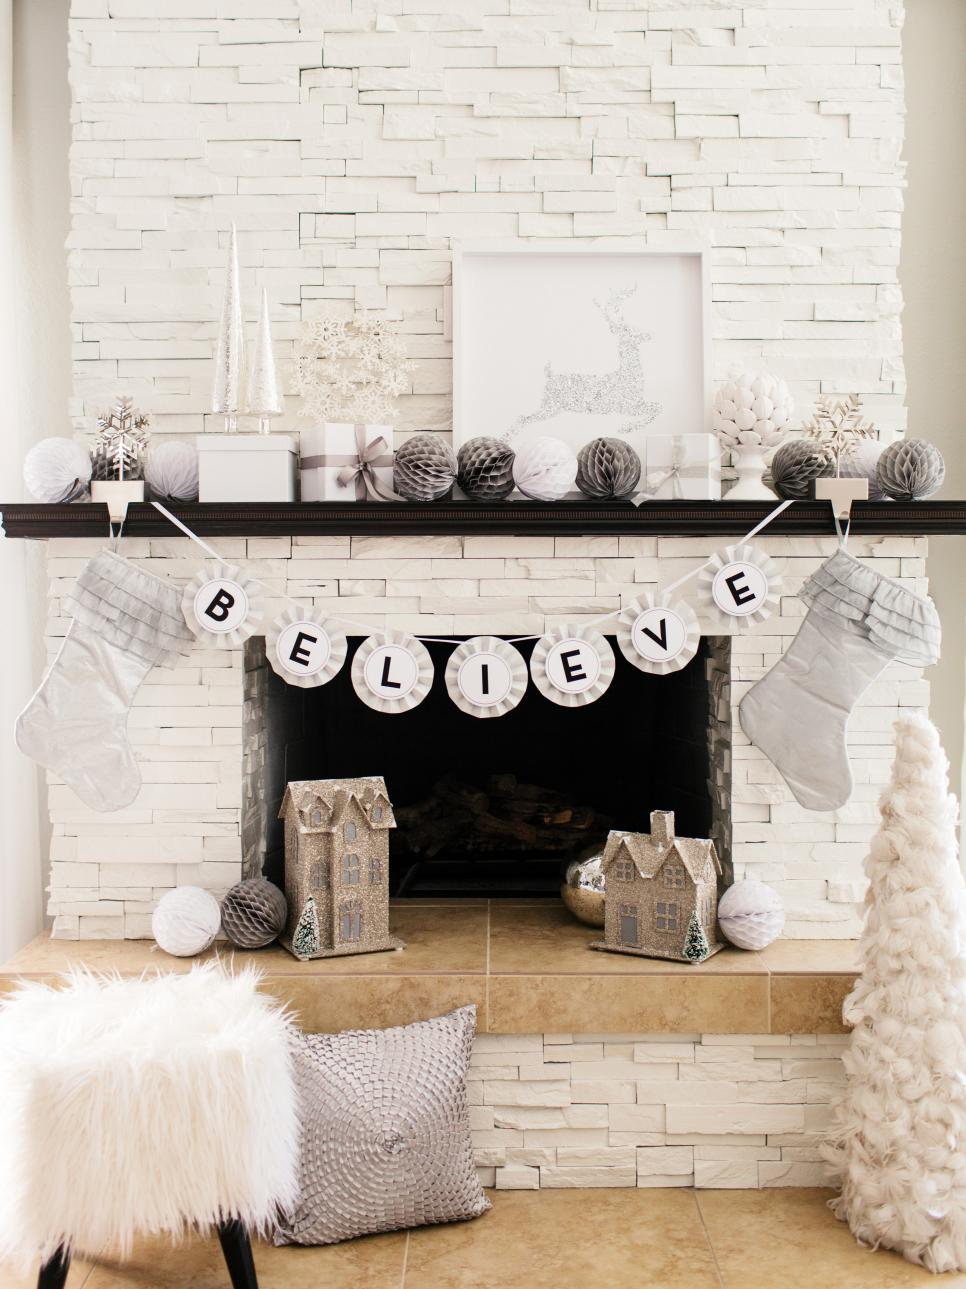 Holiday-mantel-fireplace-decorations -ideas